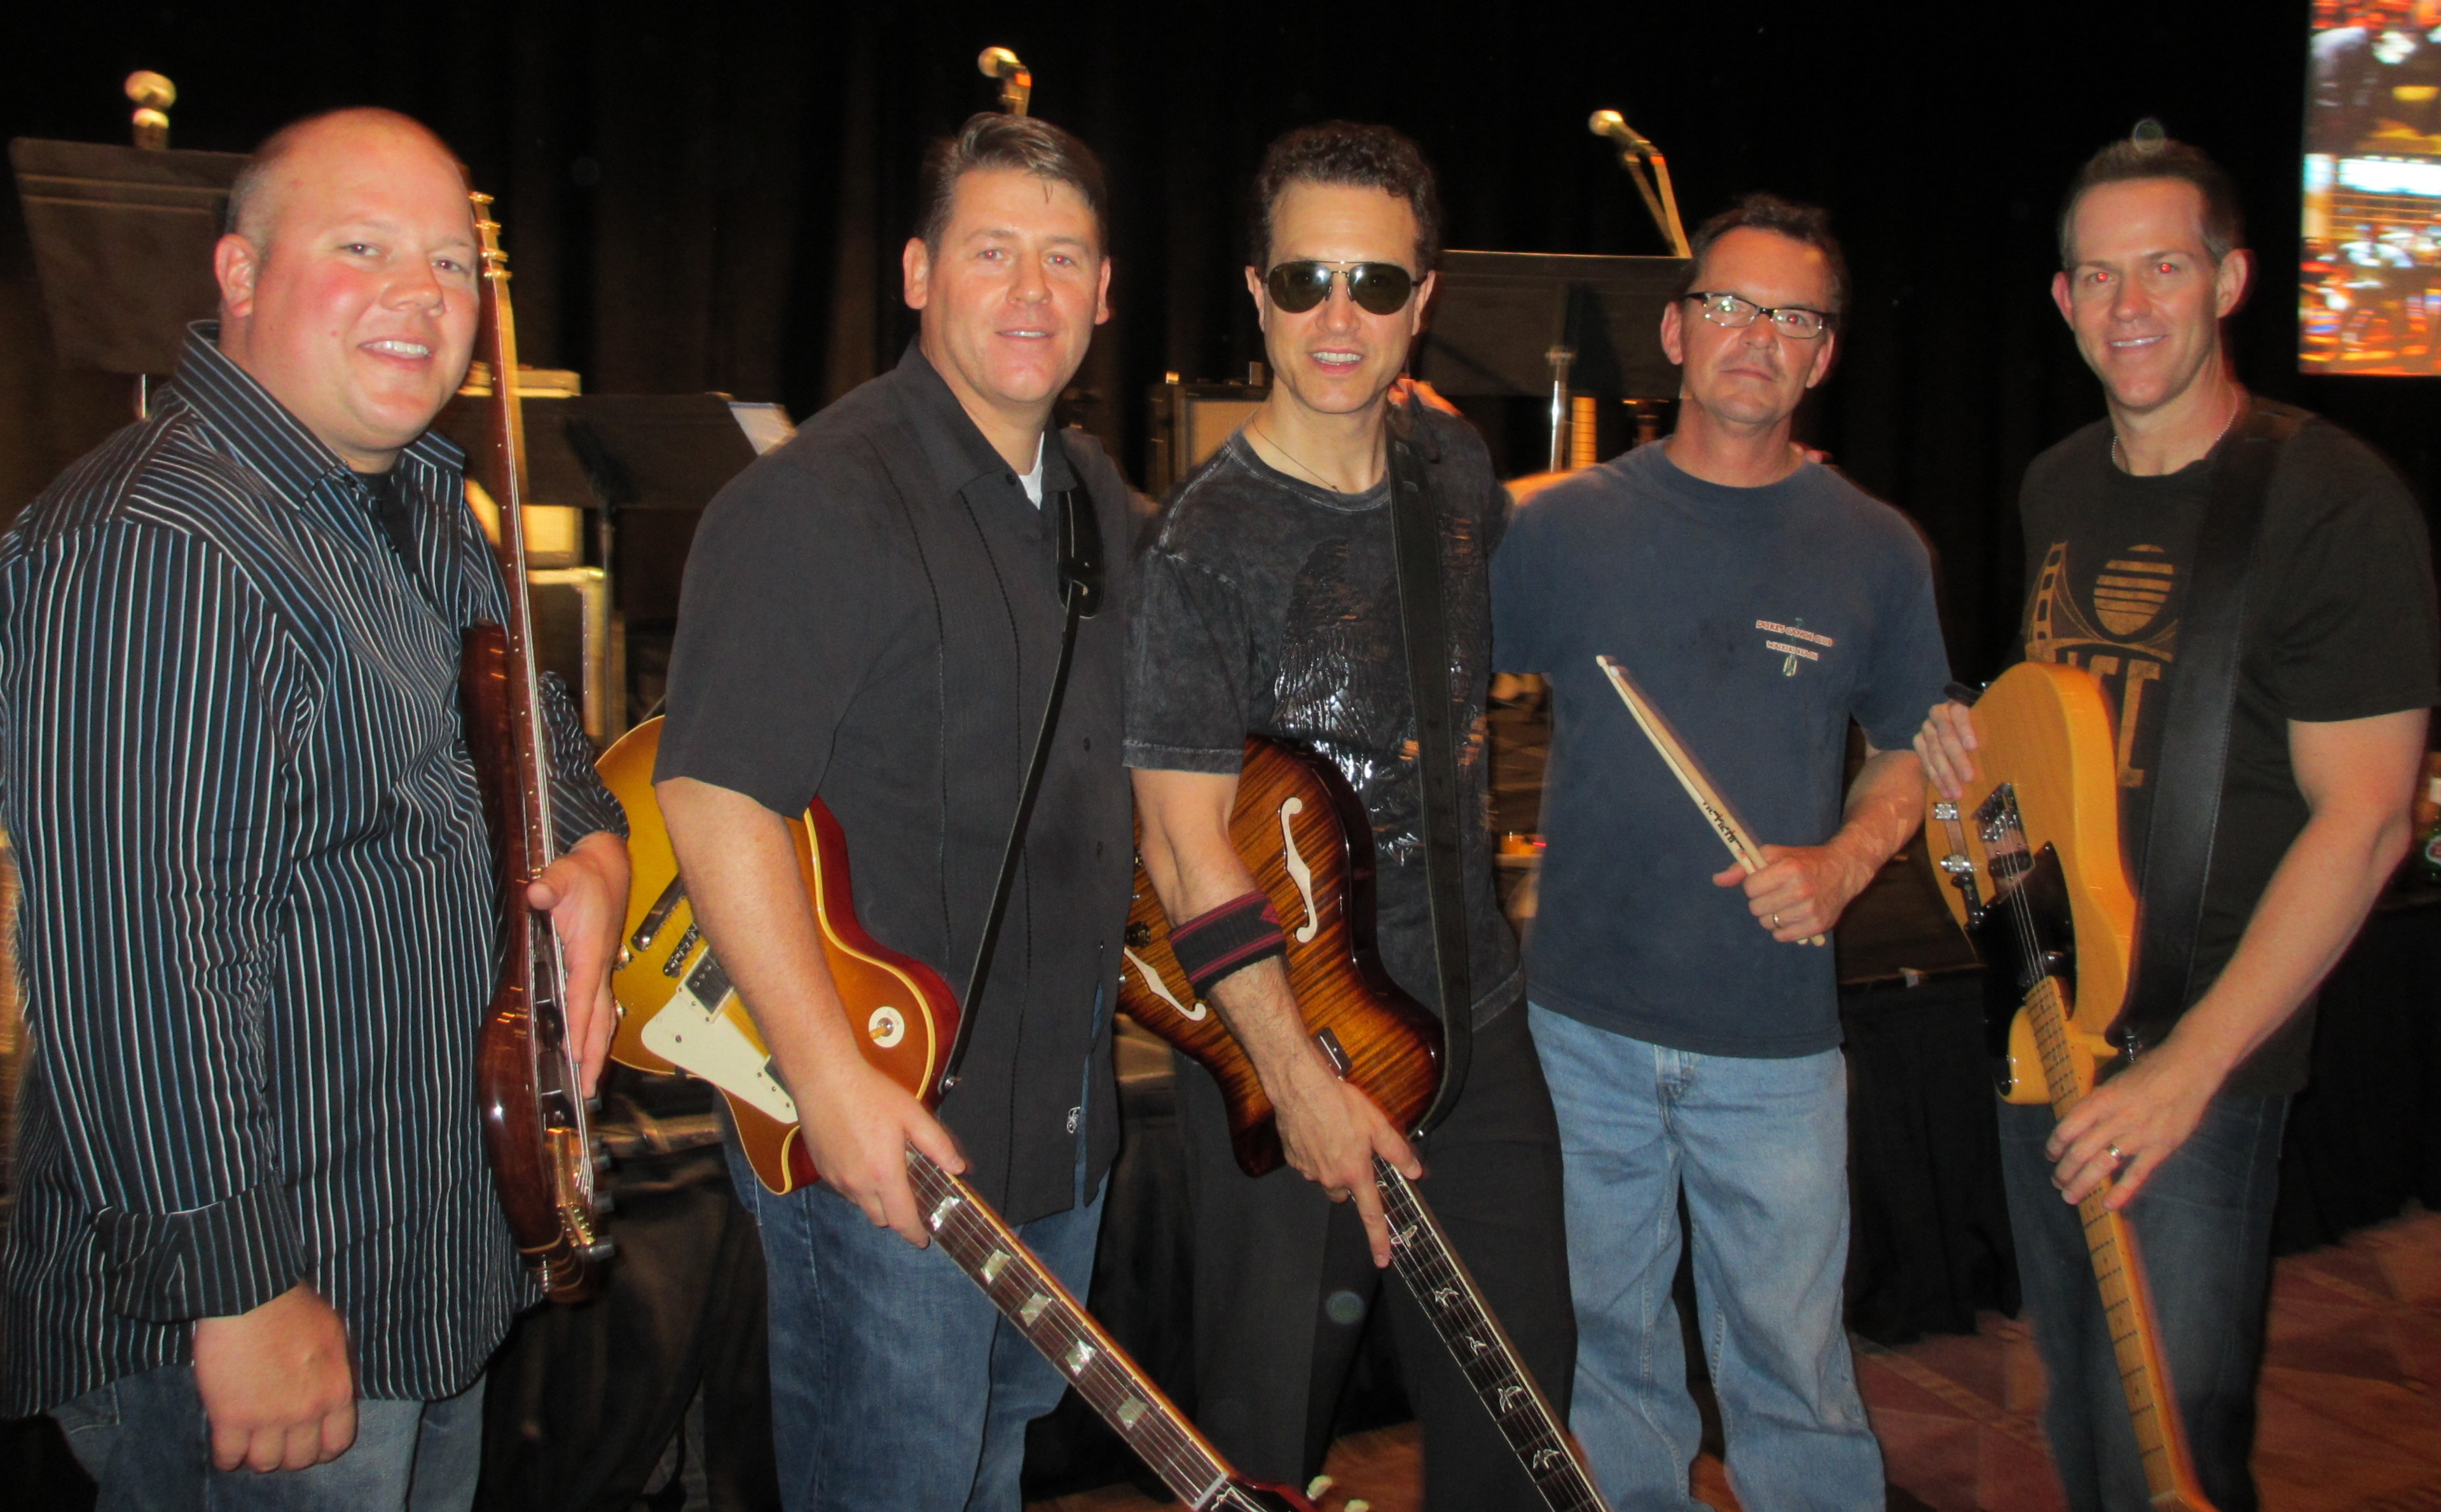 From left to right: Chris Connel, Mark Salyers (me) Steve Liberace, Rick Honecker, and Ben Johnson...